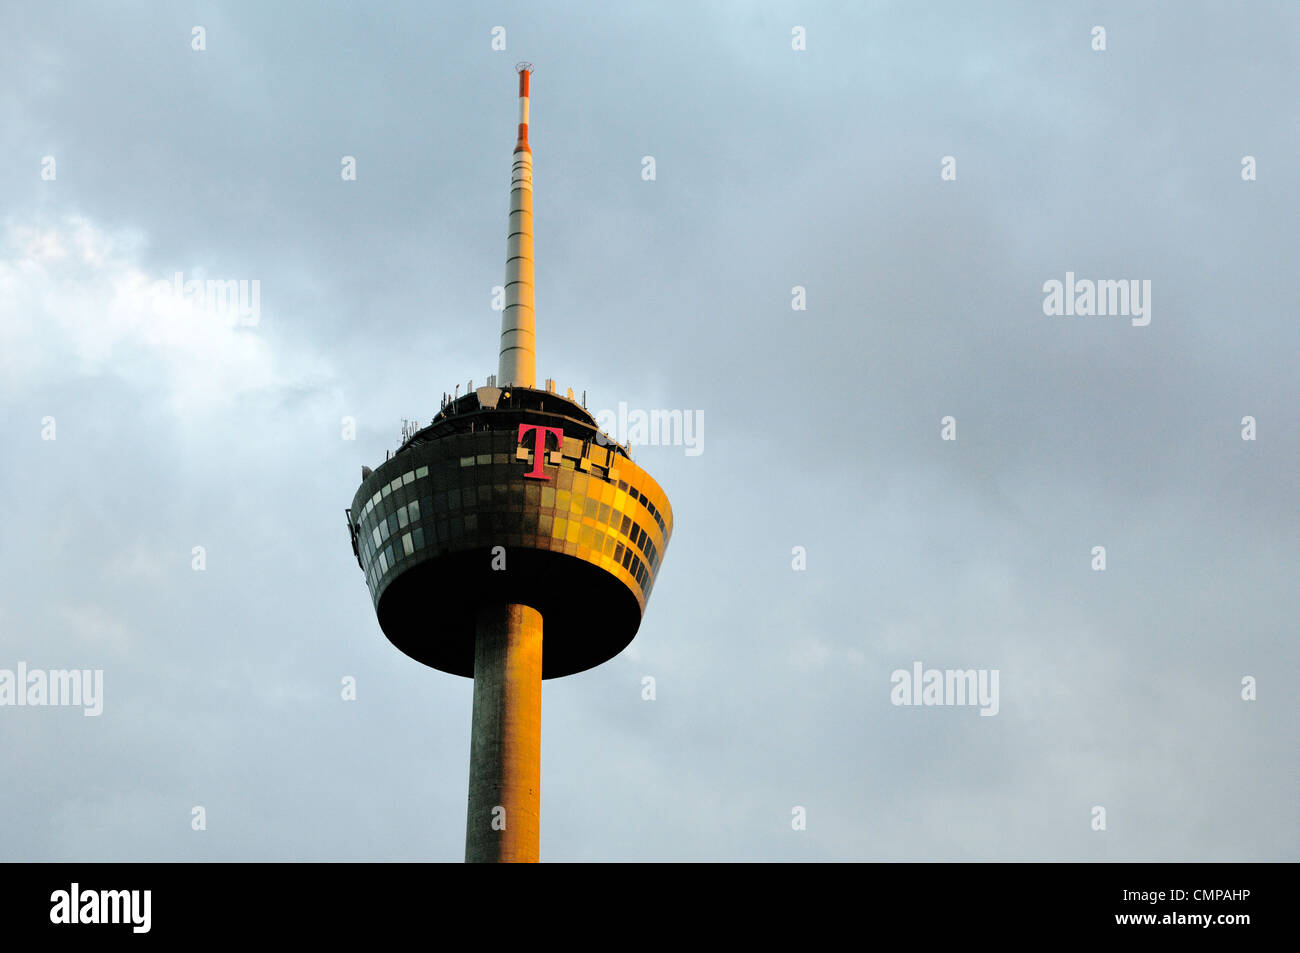 Colonius, the telecommunications tower in Cologne, Germany. Viewing platform and restaurant topped off by digital - Stock Image